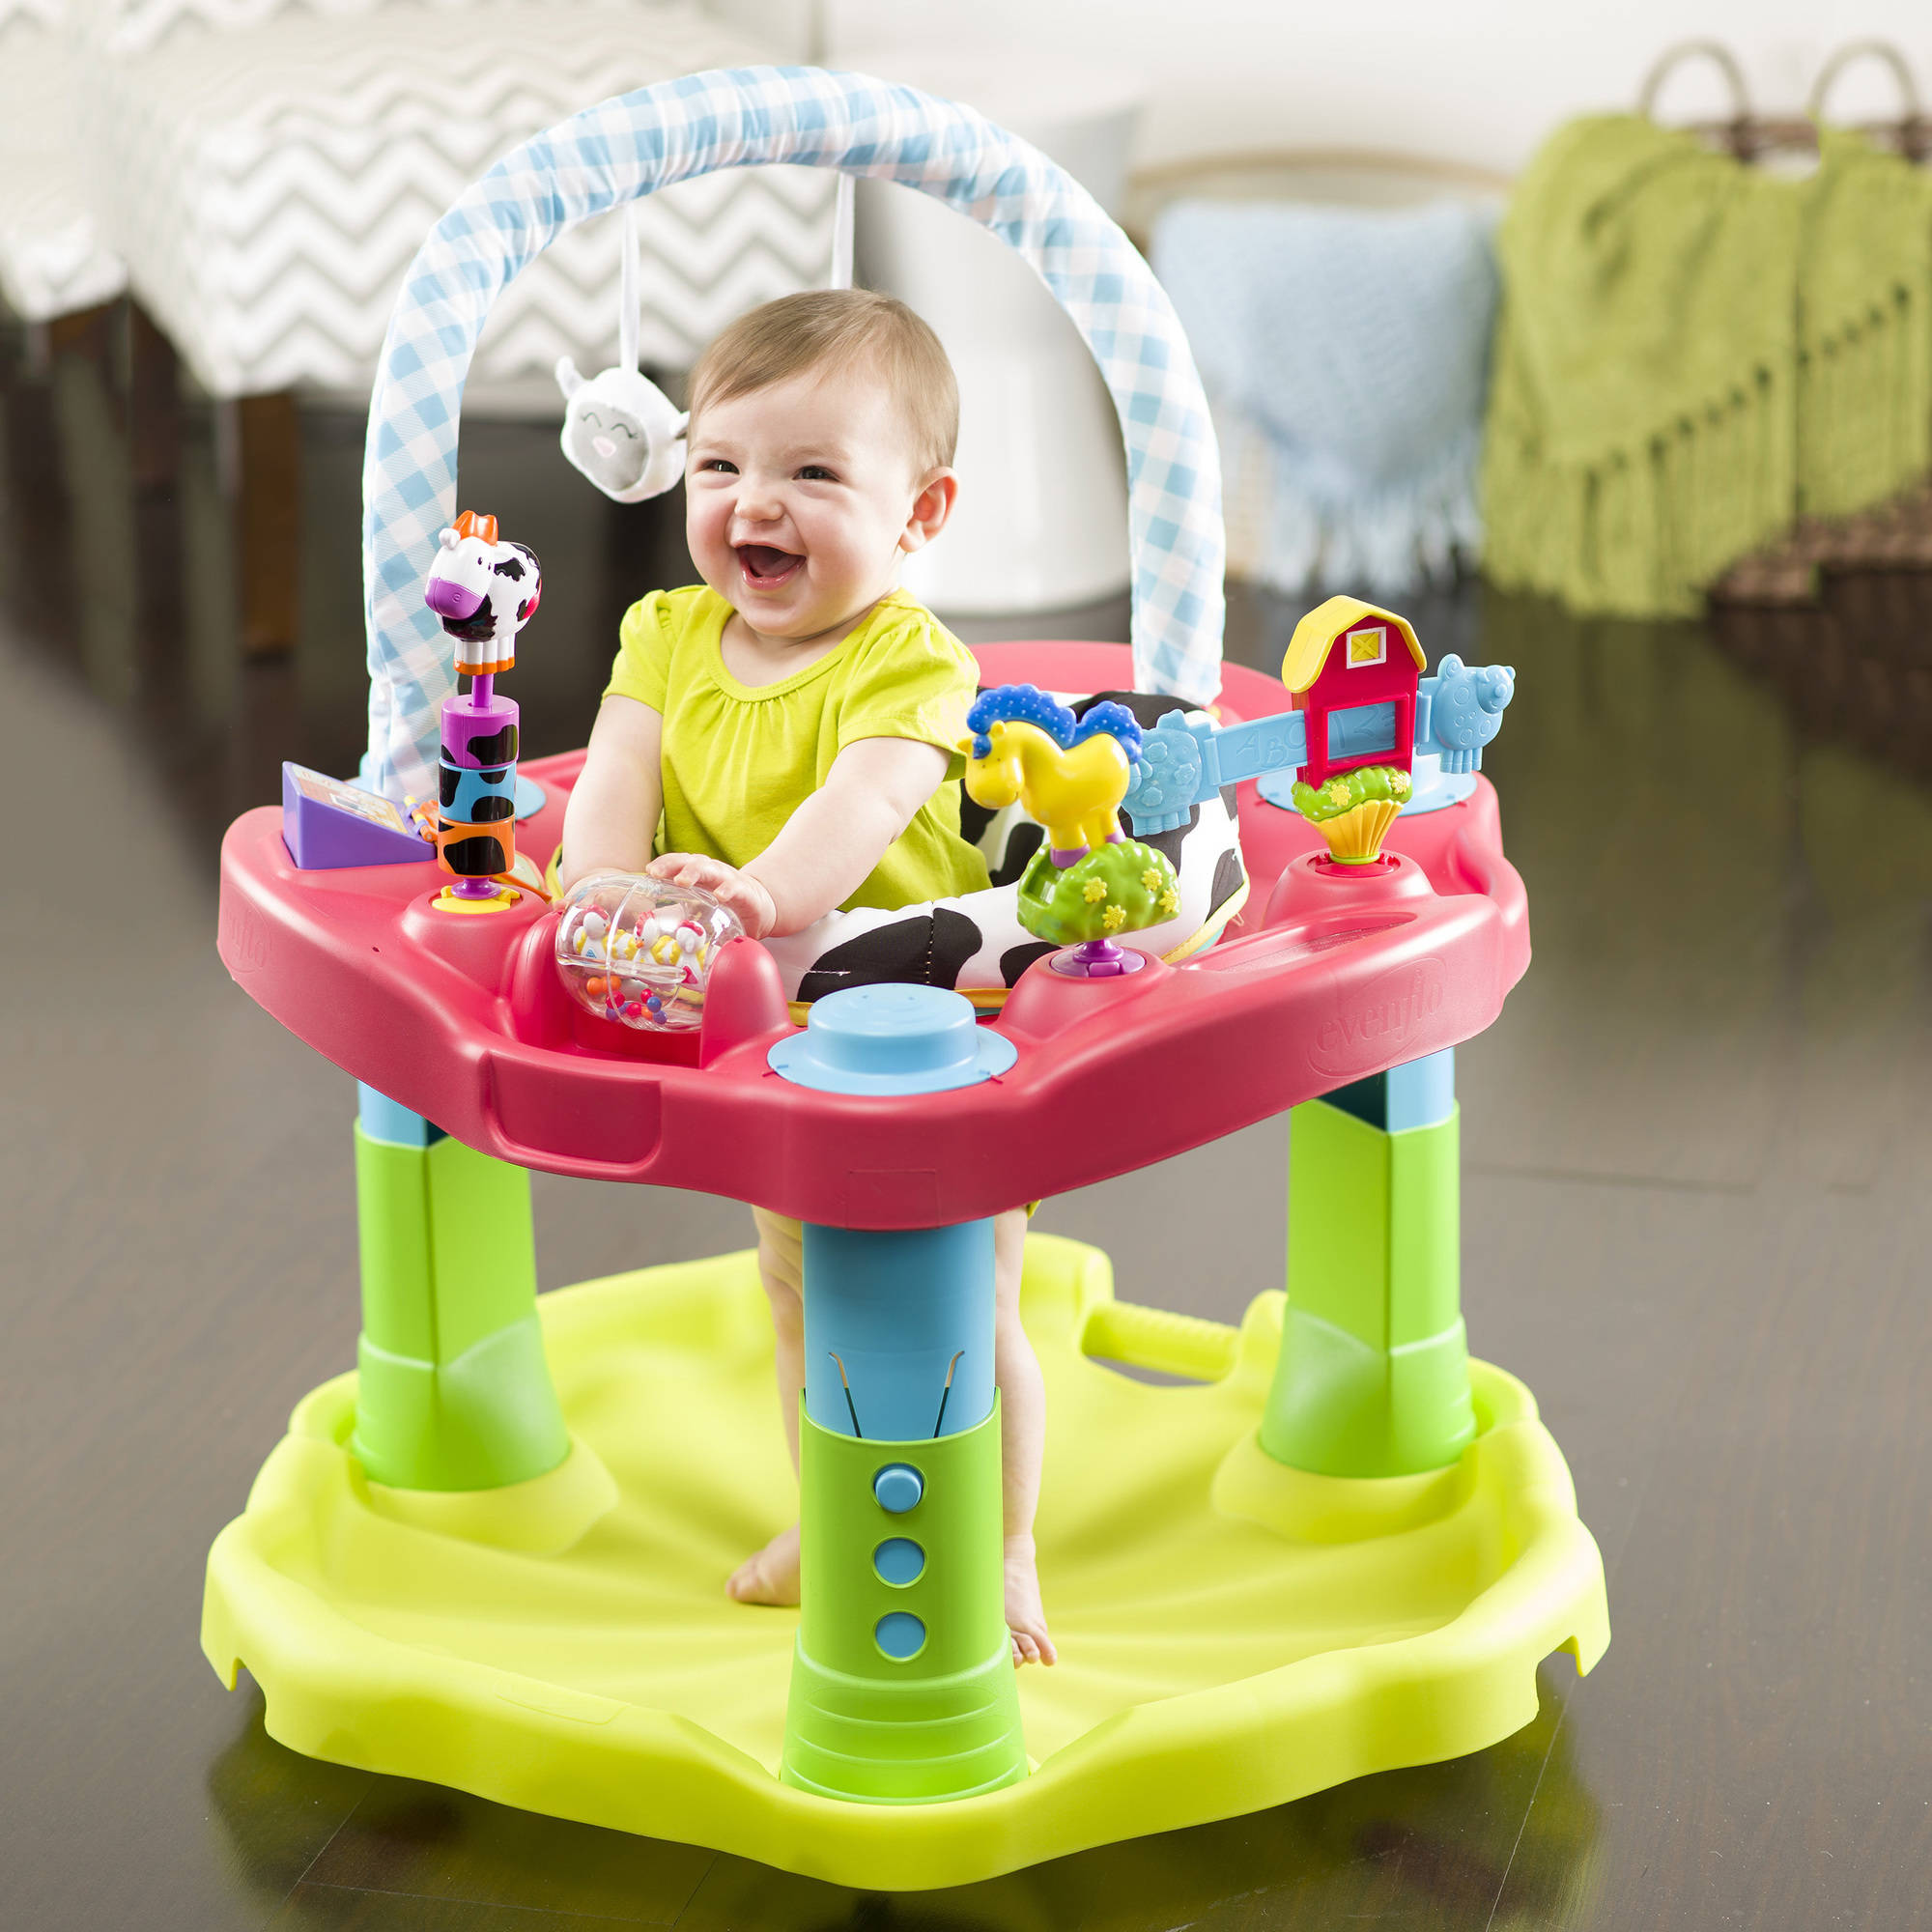 Baby Activity Center Details About Evenflo Exersaucer Baby Infant Jumper Bounce Learn Activity Center With Toys